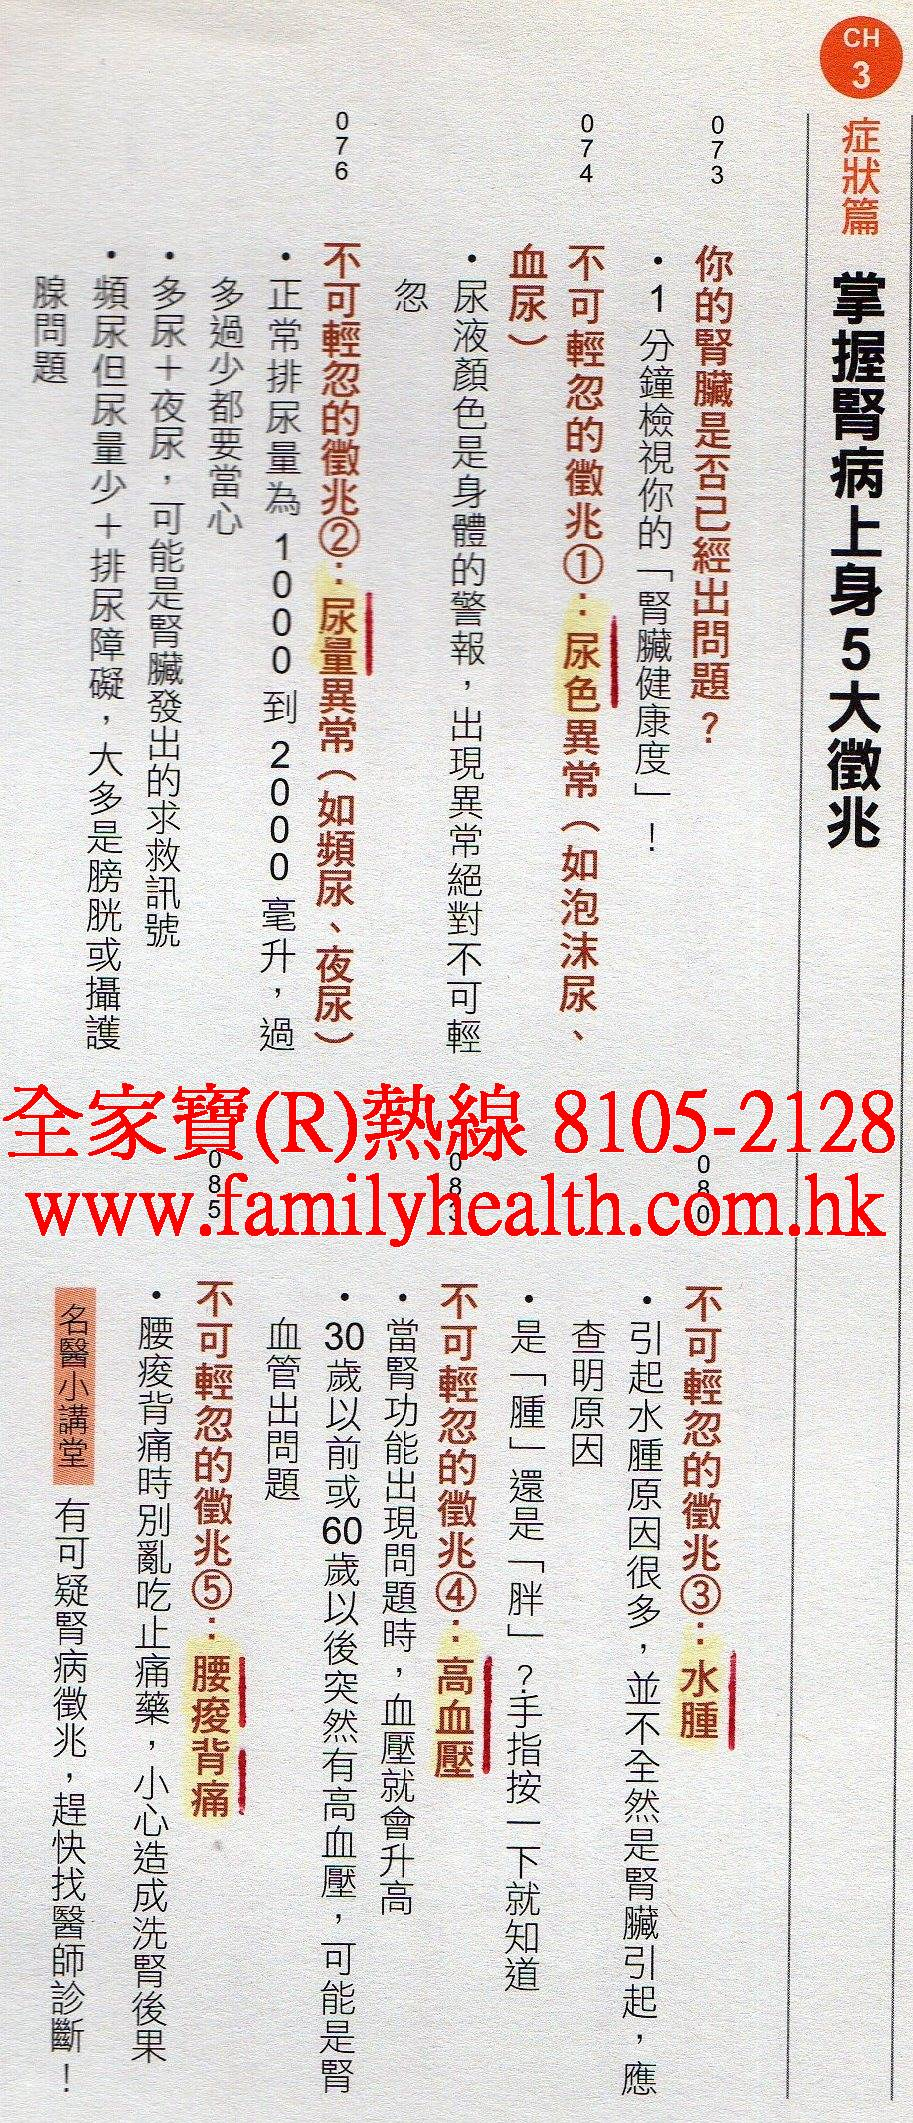 http://www.familyhealth.com.hk/files/full/1024_2.jpg